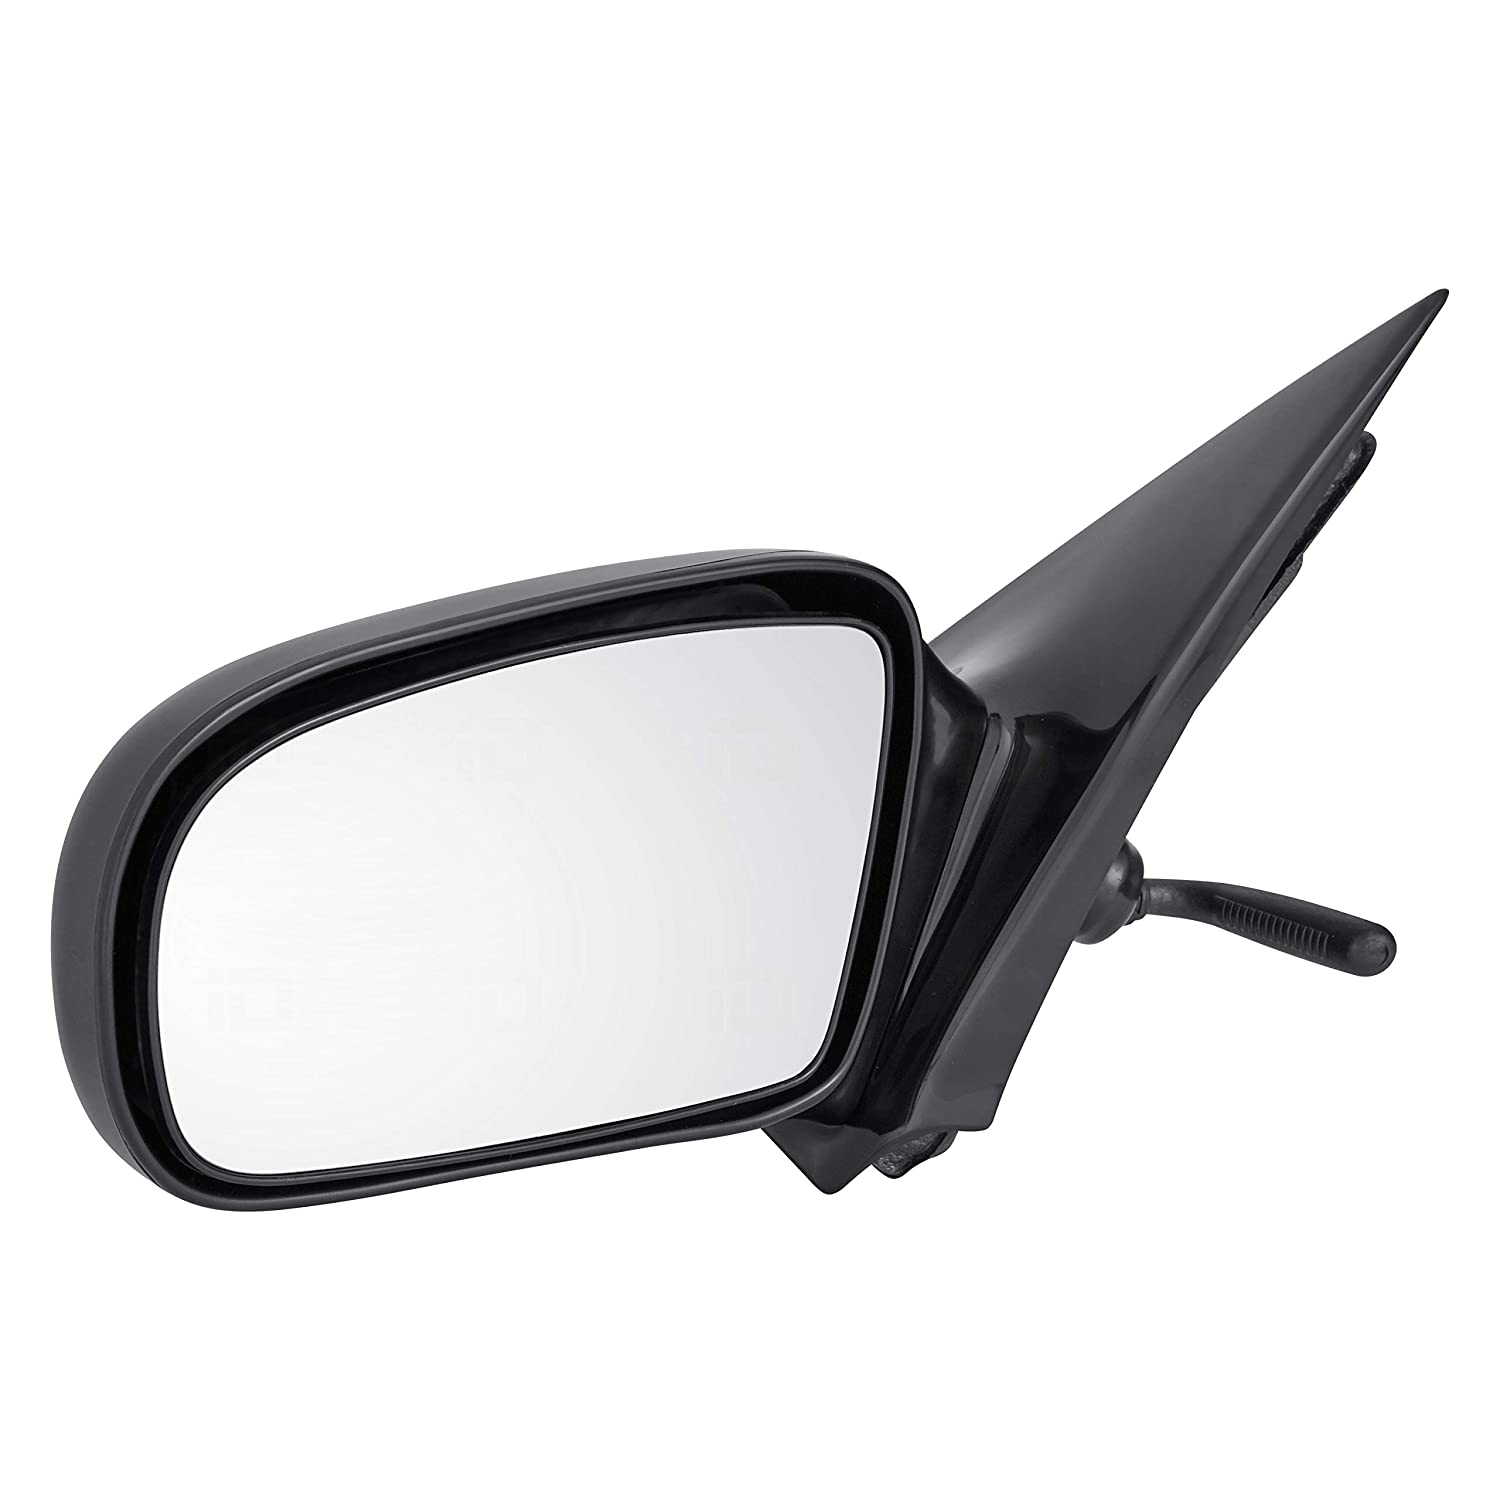 Non-Heated Manual for 1995-2005 Chevrolet Chevy Cavalier GM1321168 Pontiac Sunfire Sedan Roane Concepts Replacement Right Passenger Side Door Mirror